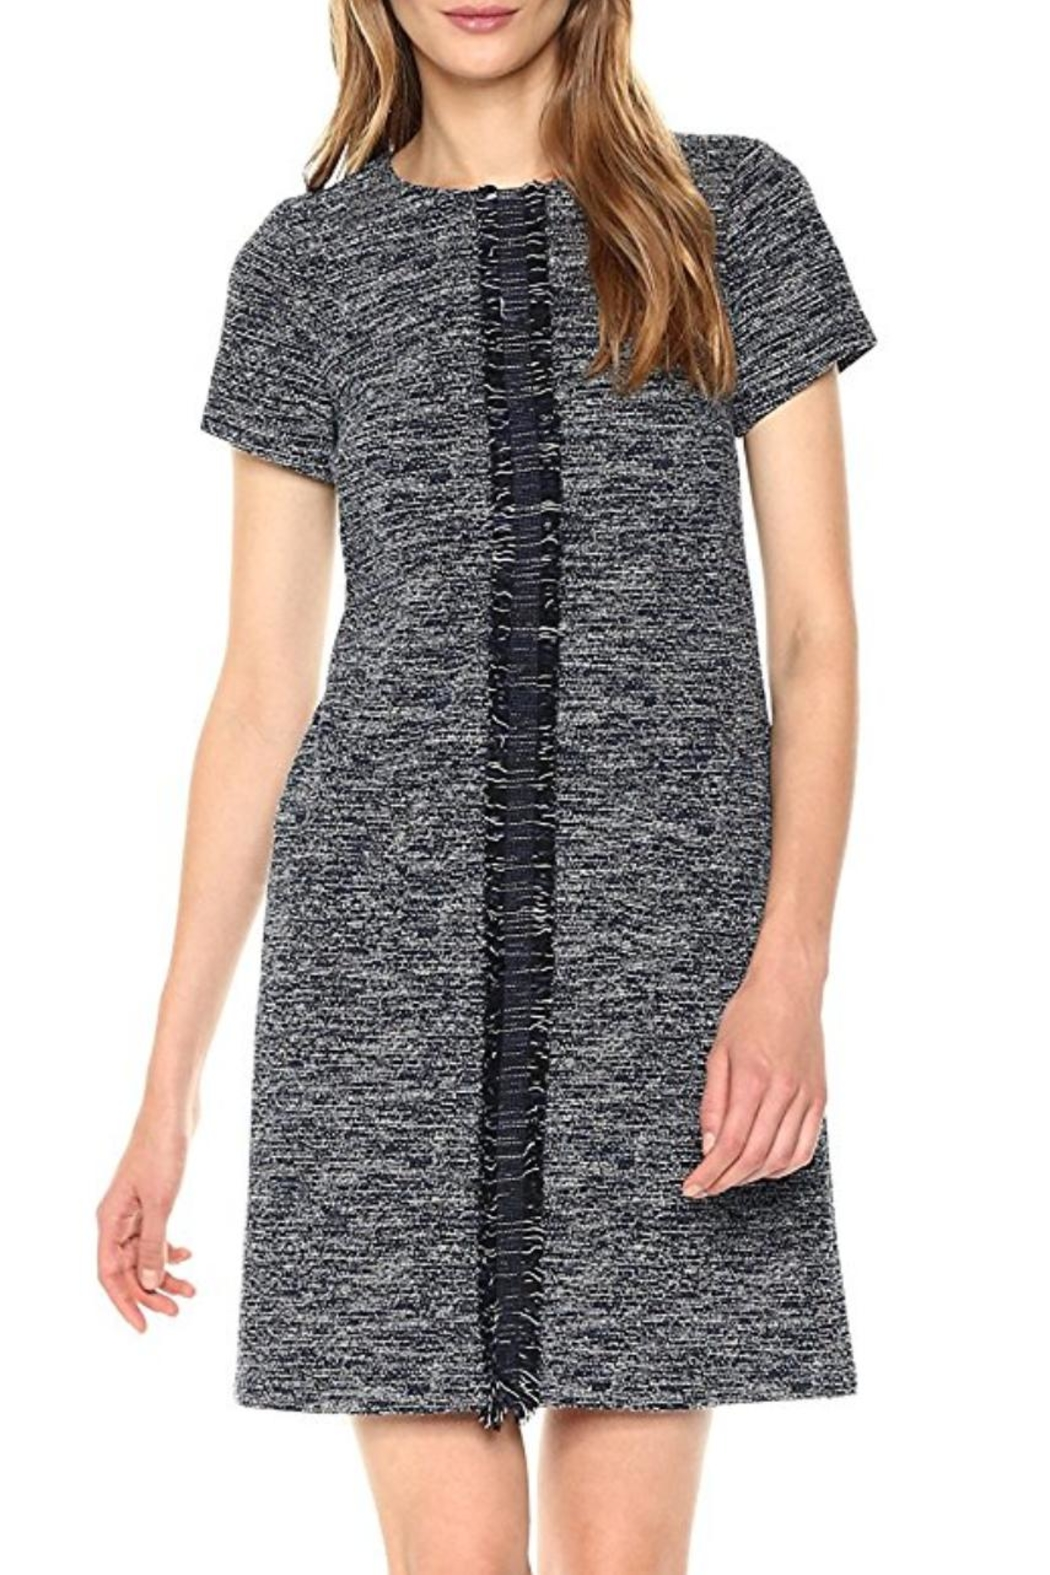 Adrianna Papell Knit Tweed Shift - Main Image